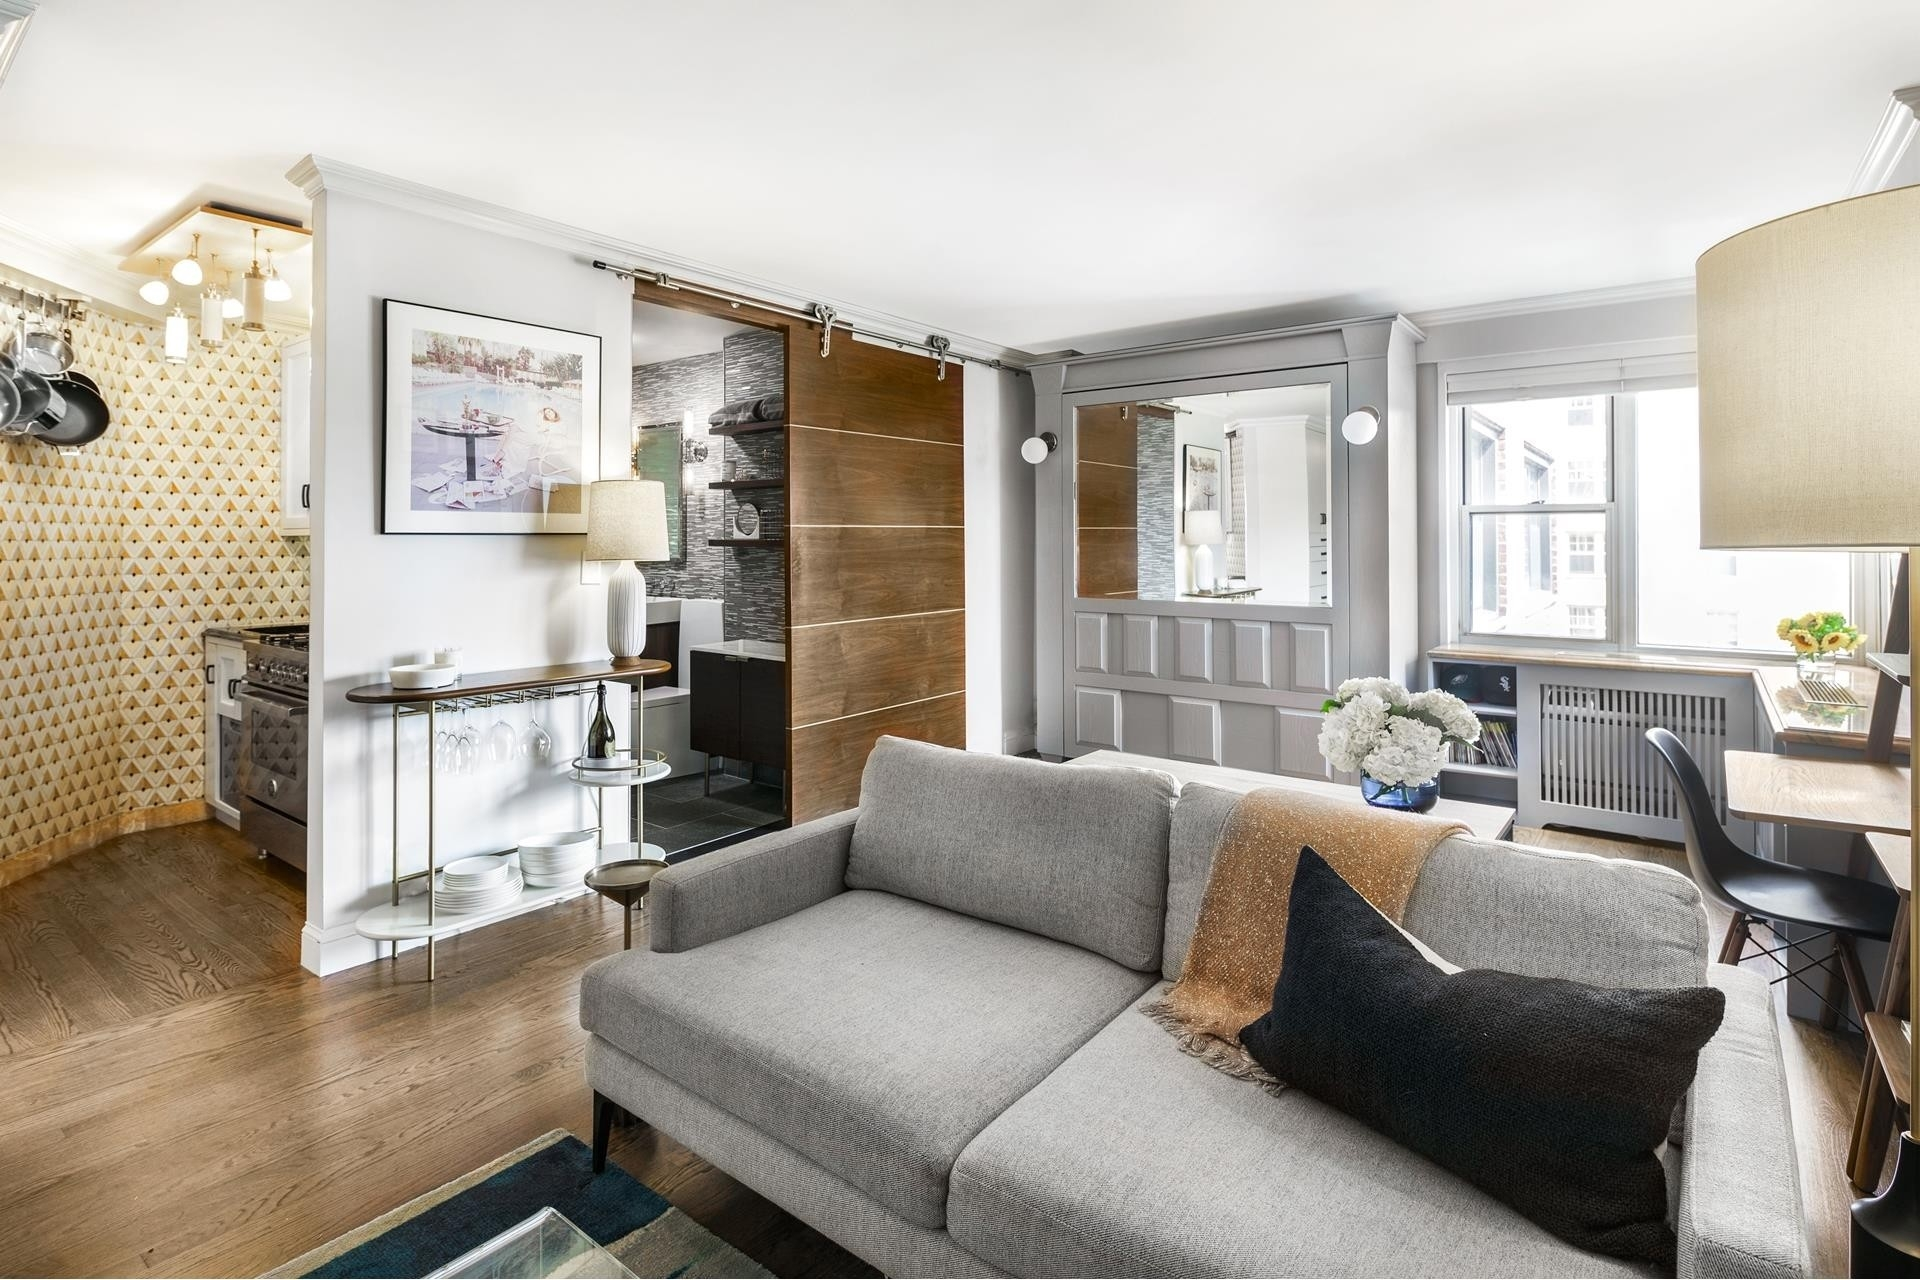 Co-op Properties for Sale at THE VAN GOGH, 14 Horatio St, 14A West Village, New York, NY 10014